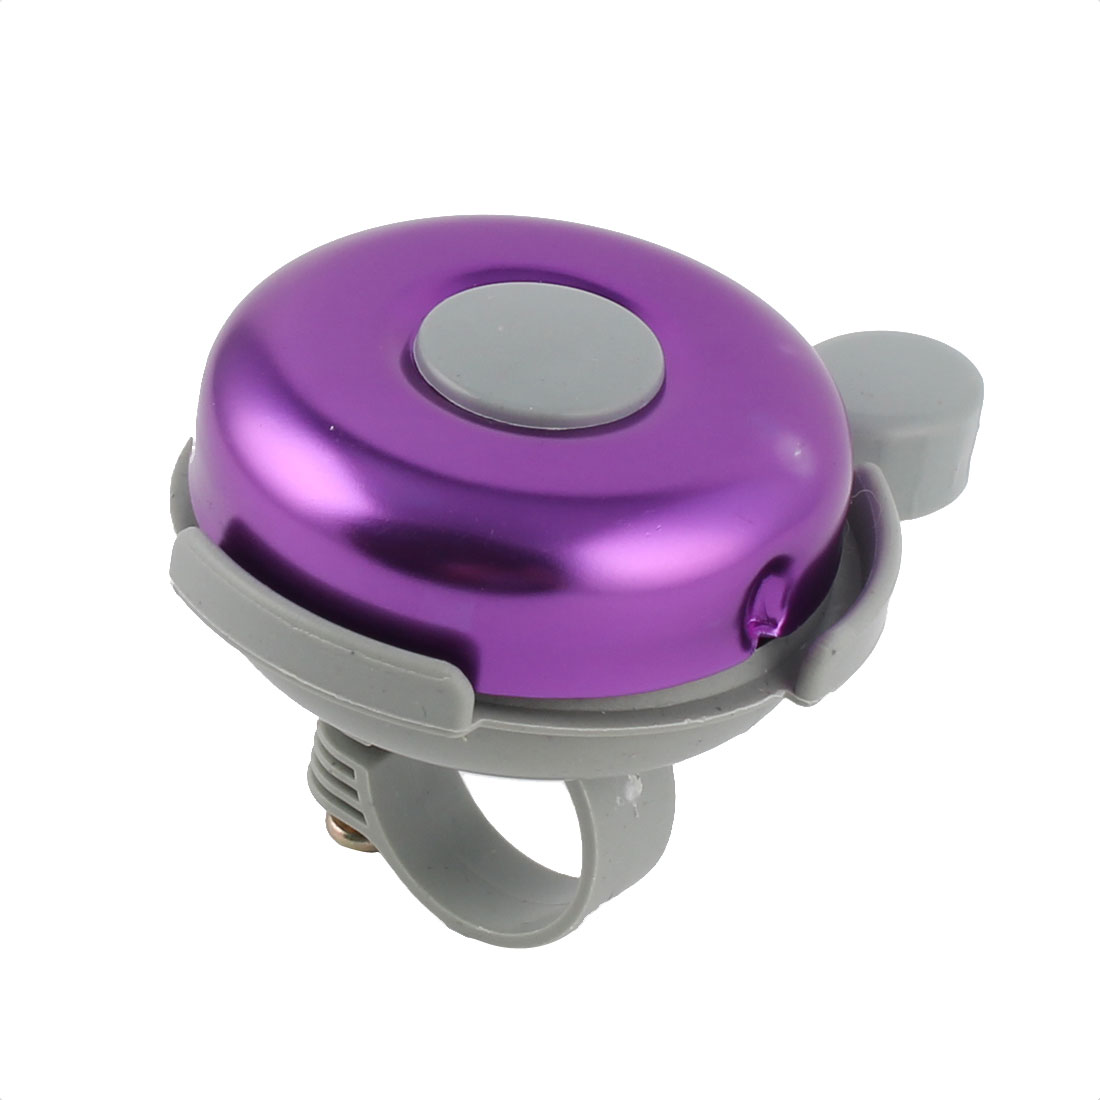 Bike Bicycle Round Shaped 21mm Dia Handlebar Sound Alarm Bell Ring Gray Purple